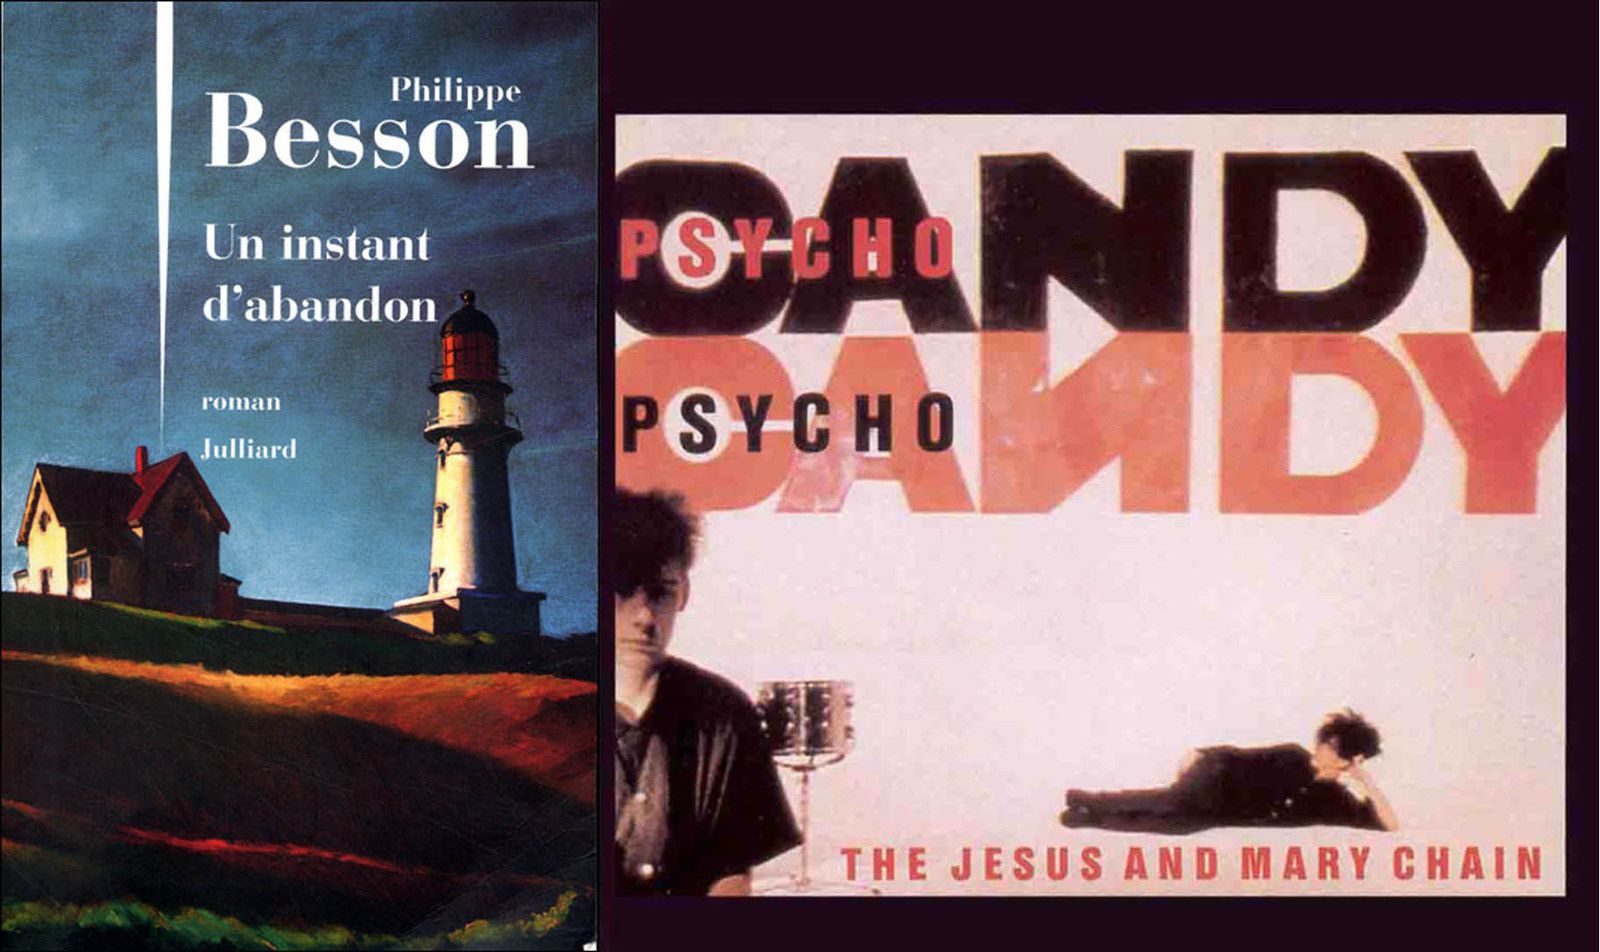 &quot&#x3B;Un instant d'abandon&quot&#x3B; de Philippe Besson / The Jesus &amp&#x3B; Mary Chain &quot&#x3B;Psychocandy&quot&#x3B;